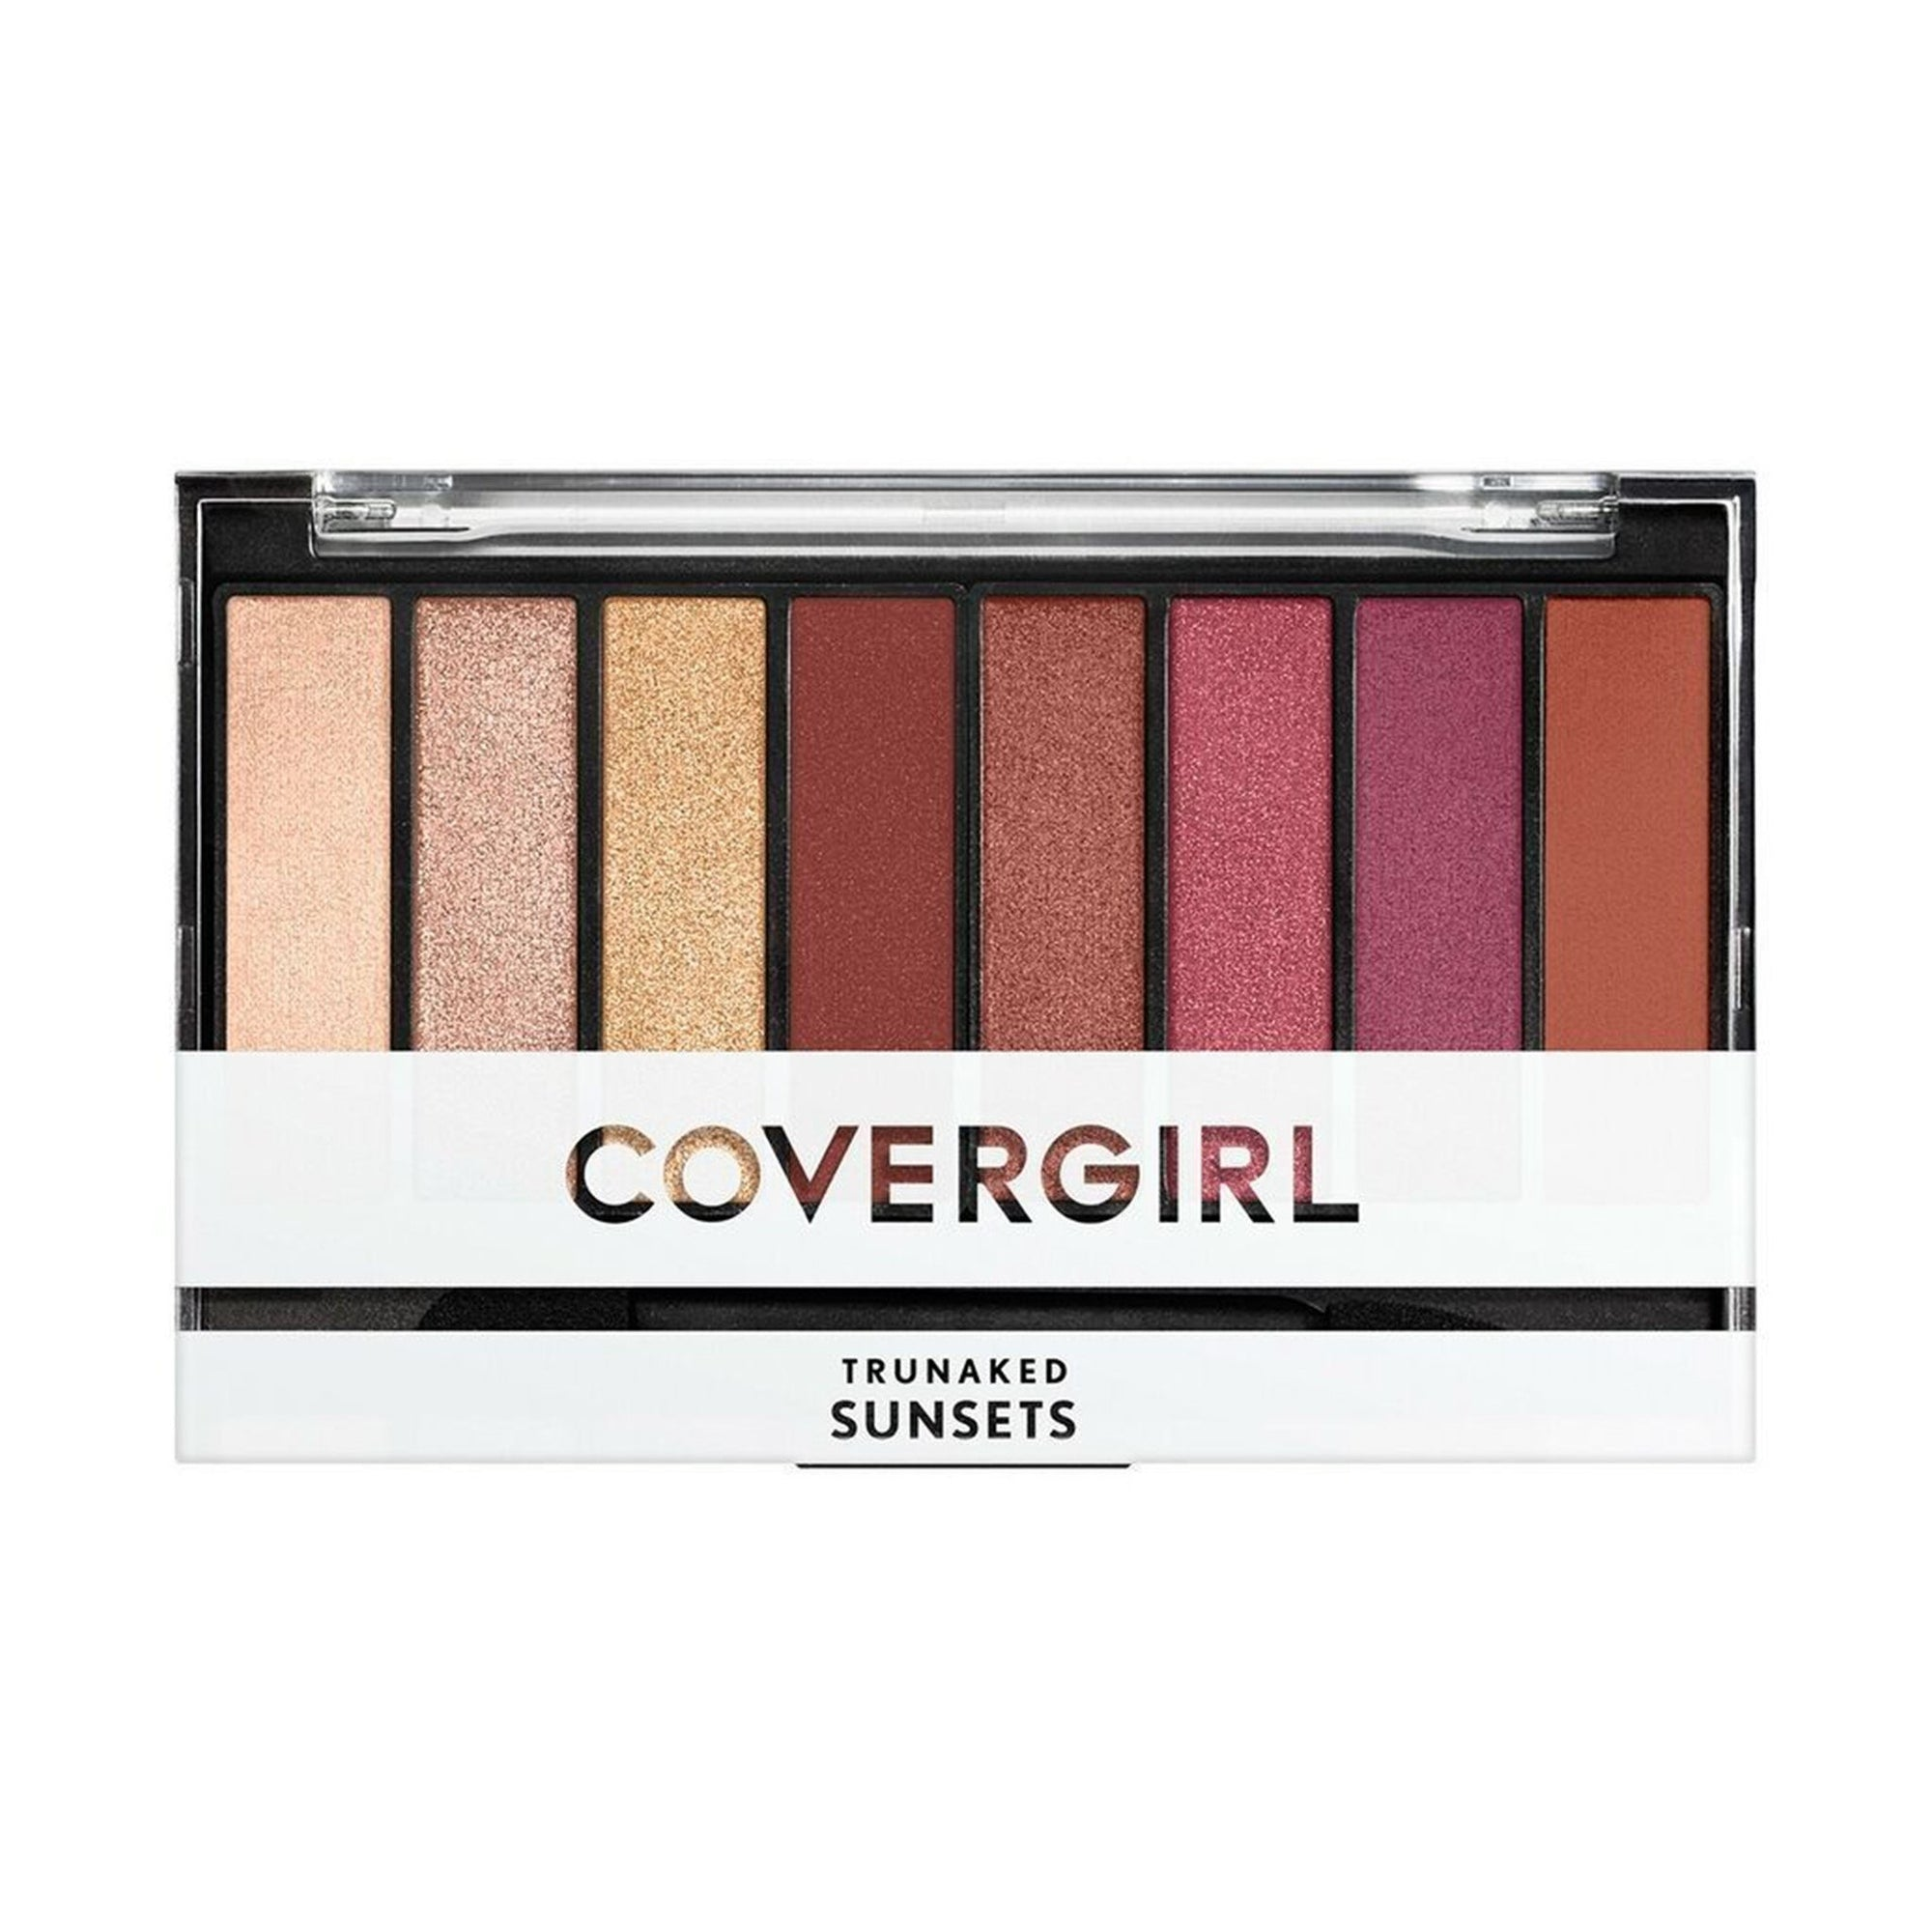 Covergirl TruNaked Eye Shadow Palette Sunsets